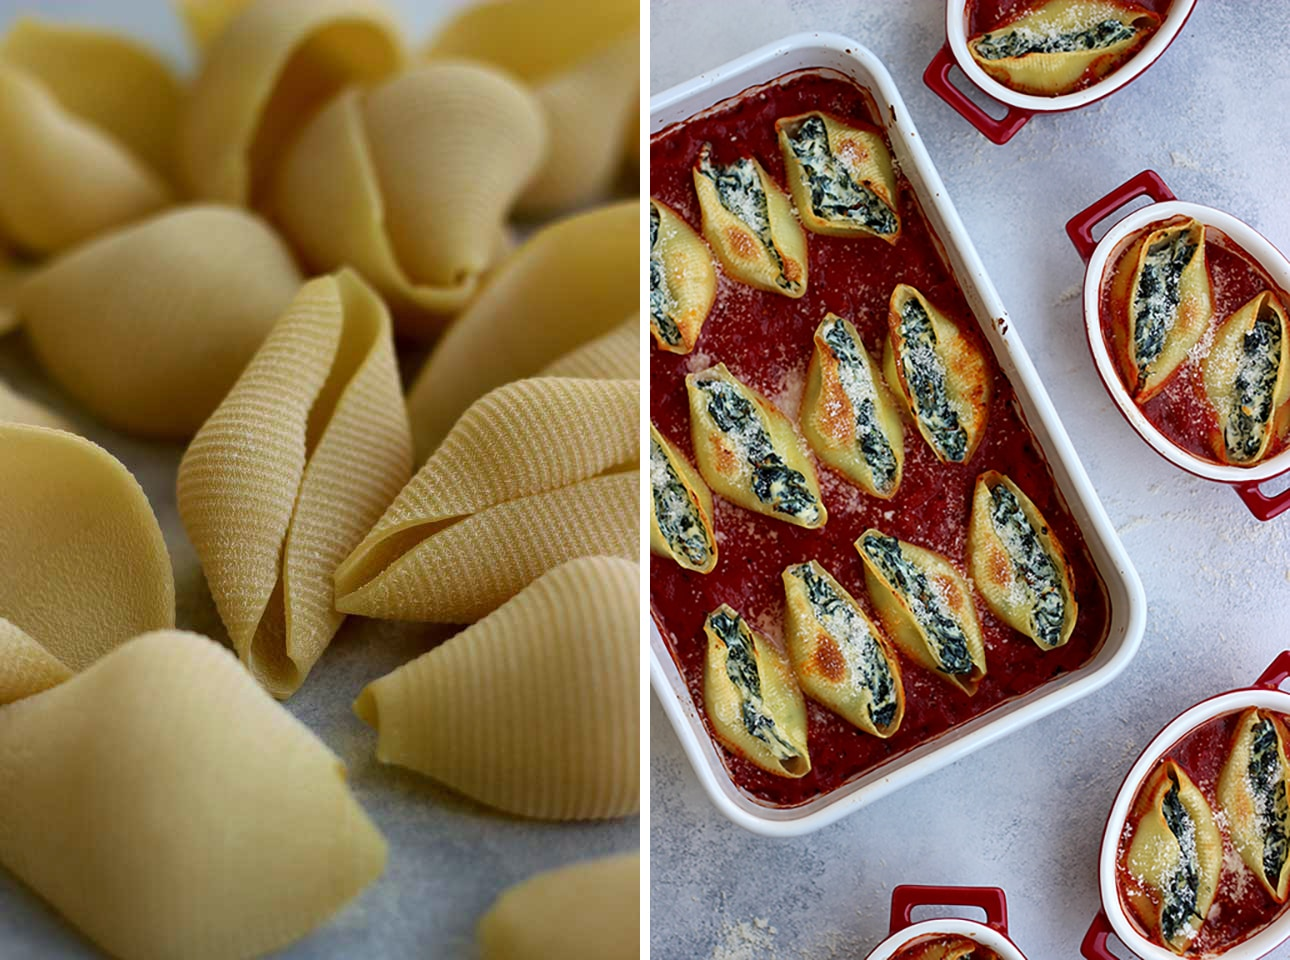 Dry Shells Next to Stuffed Shells in a Baking Dish Collage